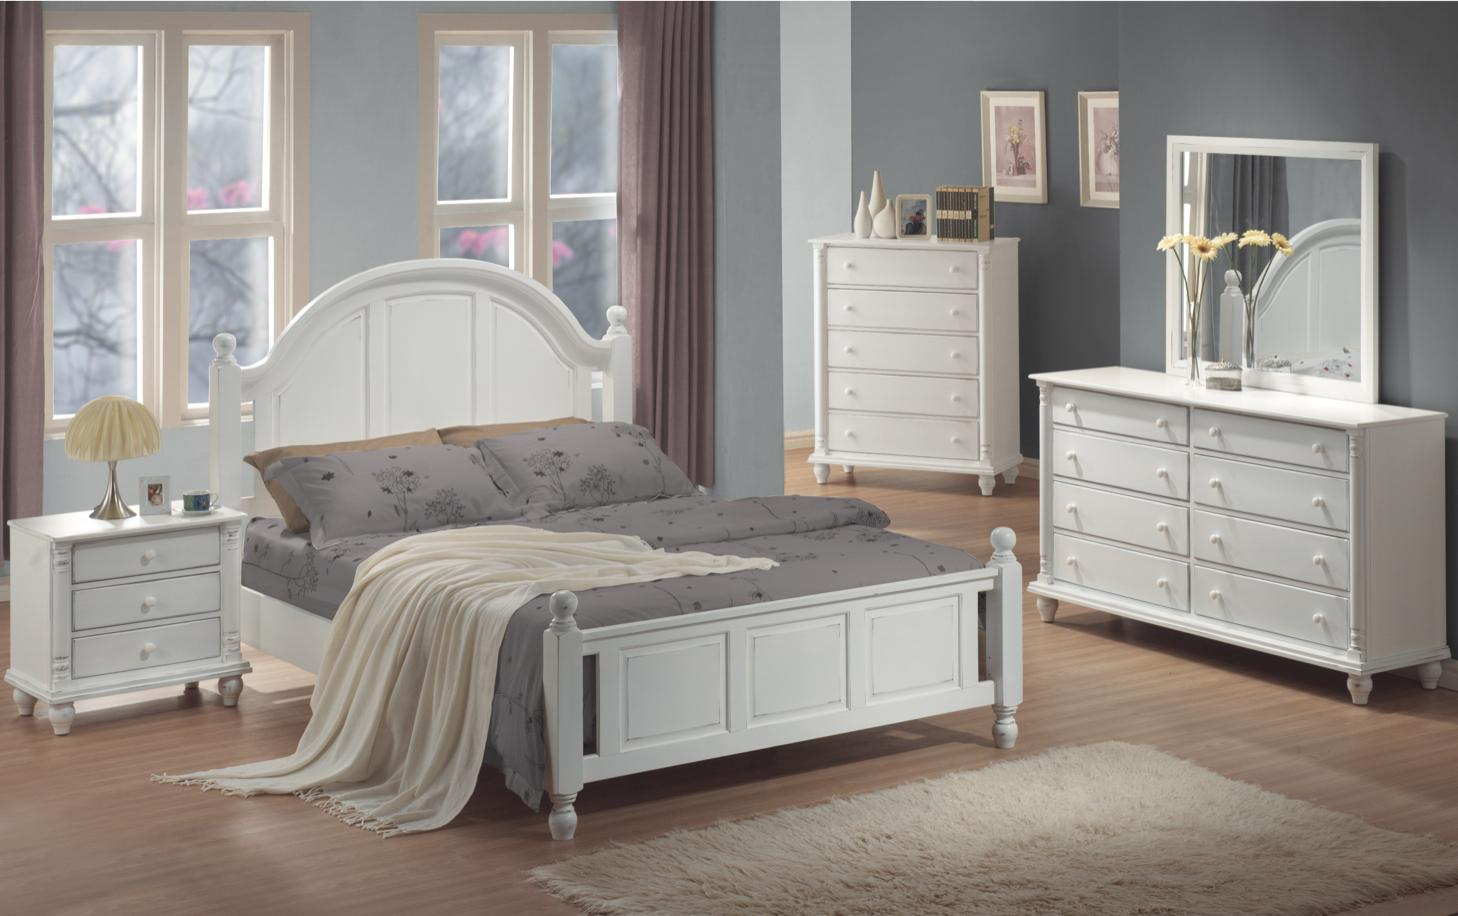 Cal king 4 pc set, kayla (bed, dresser, nightstand, mirror)